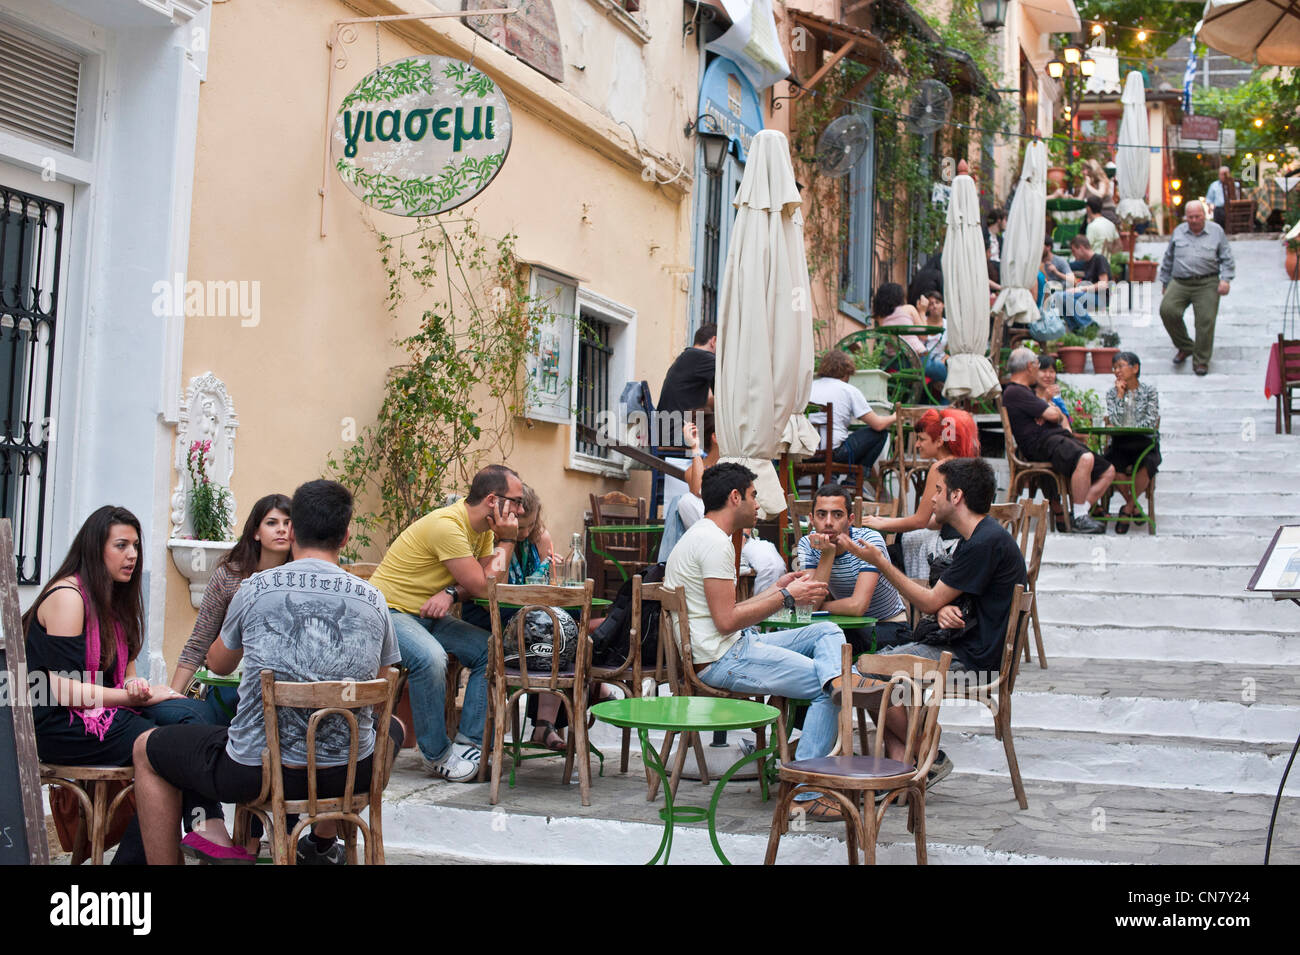 Greece, Athens, the touristic district of Plaka - Stock Image